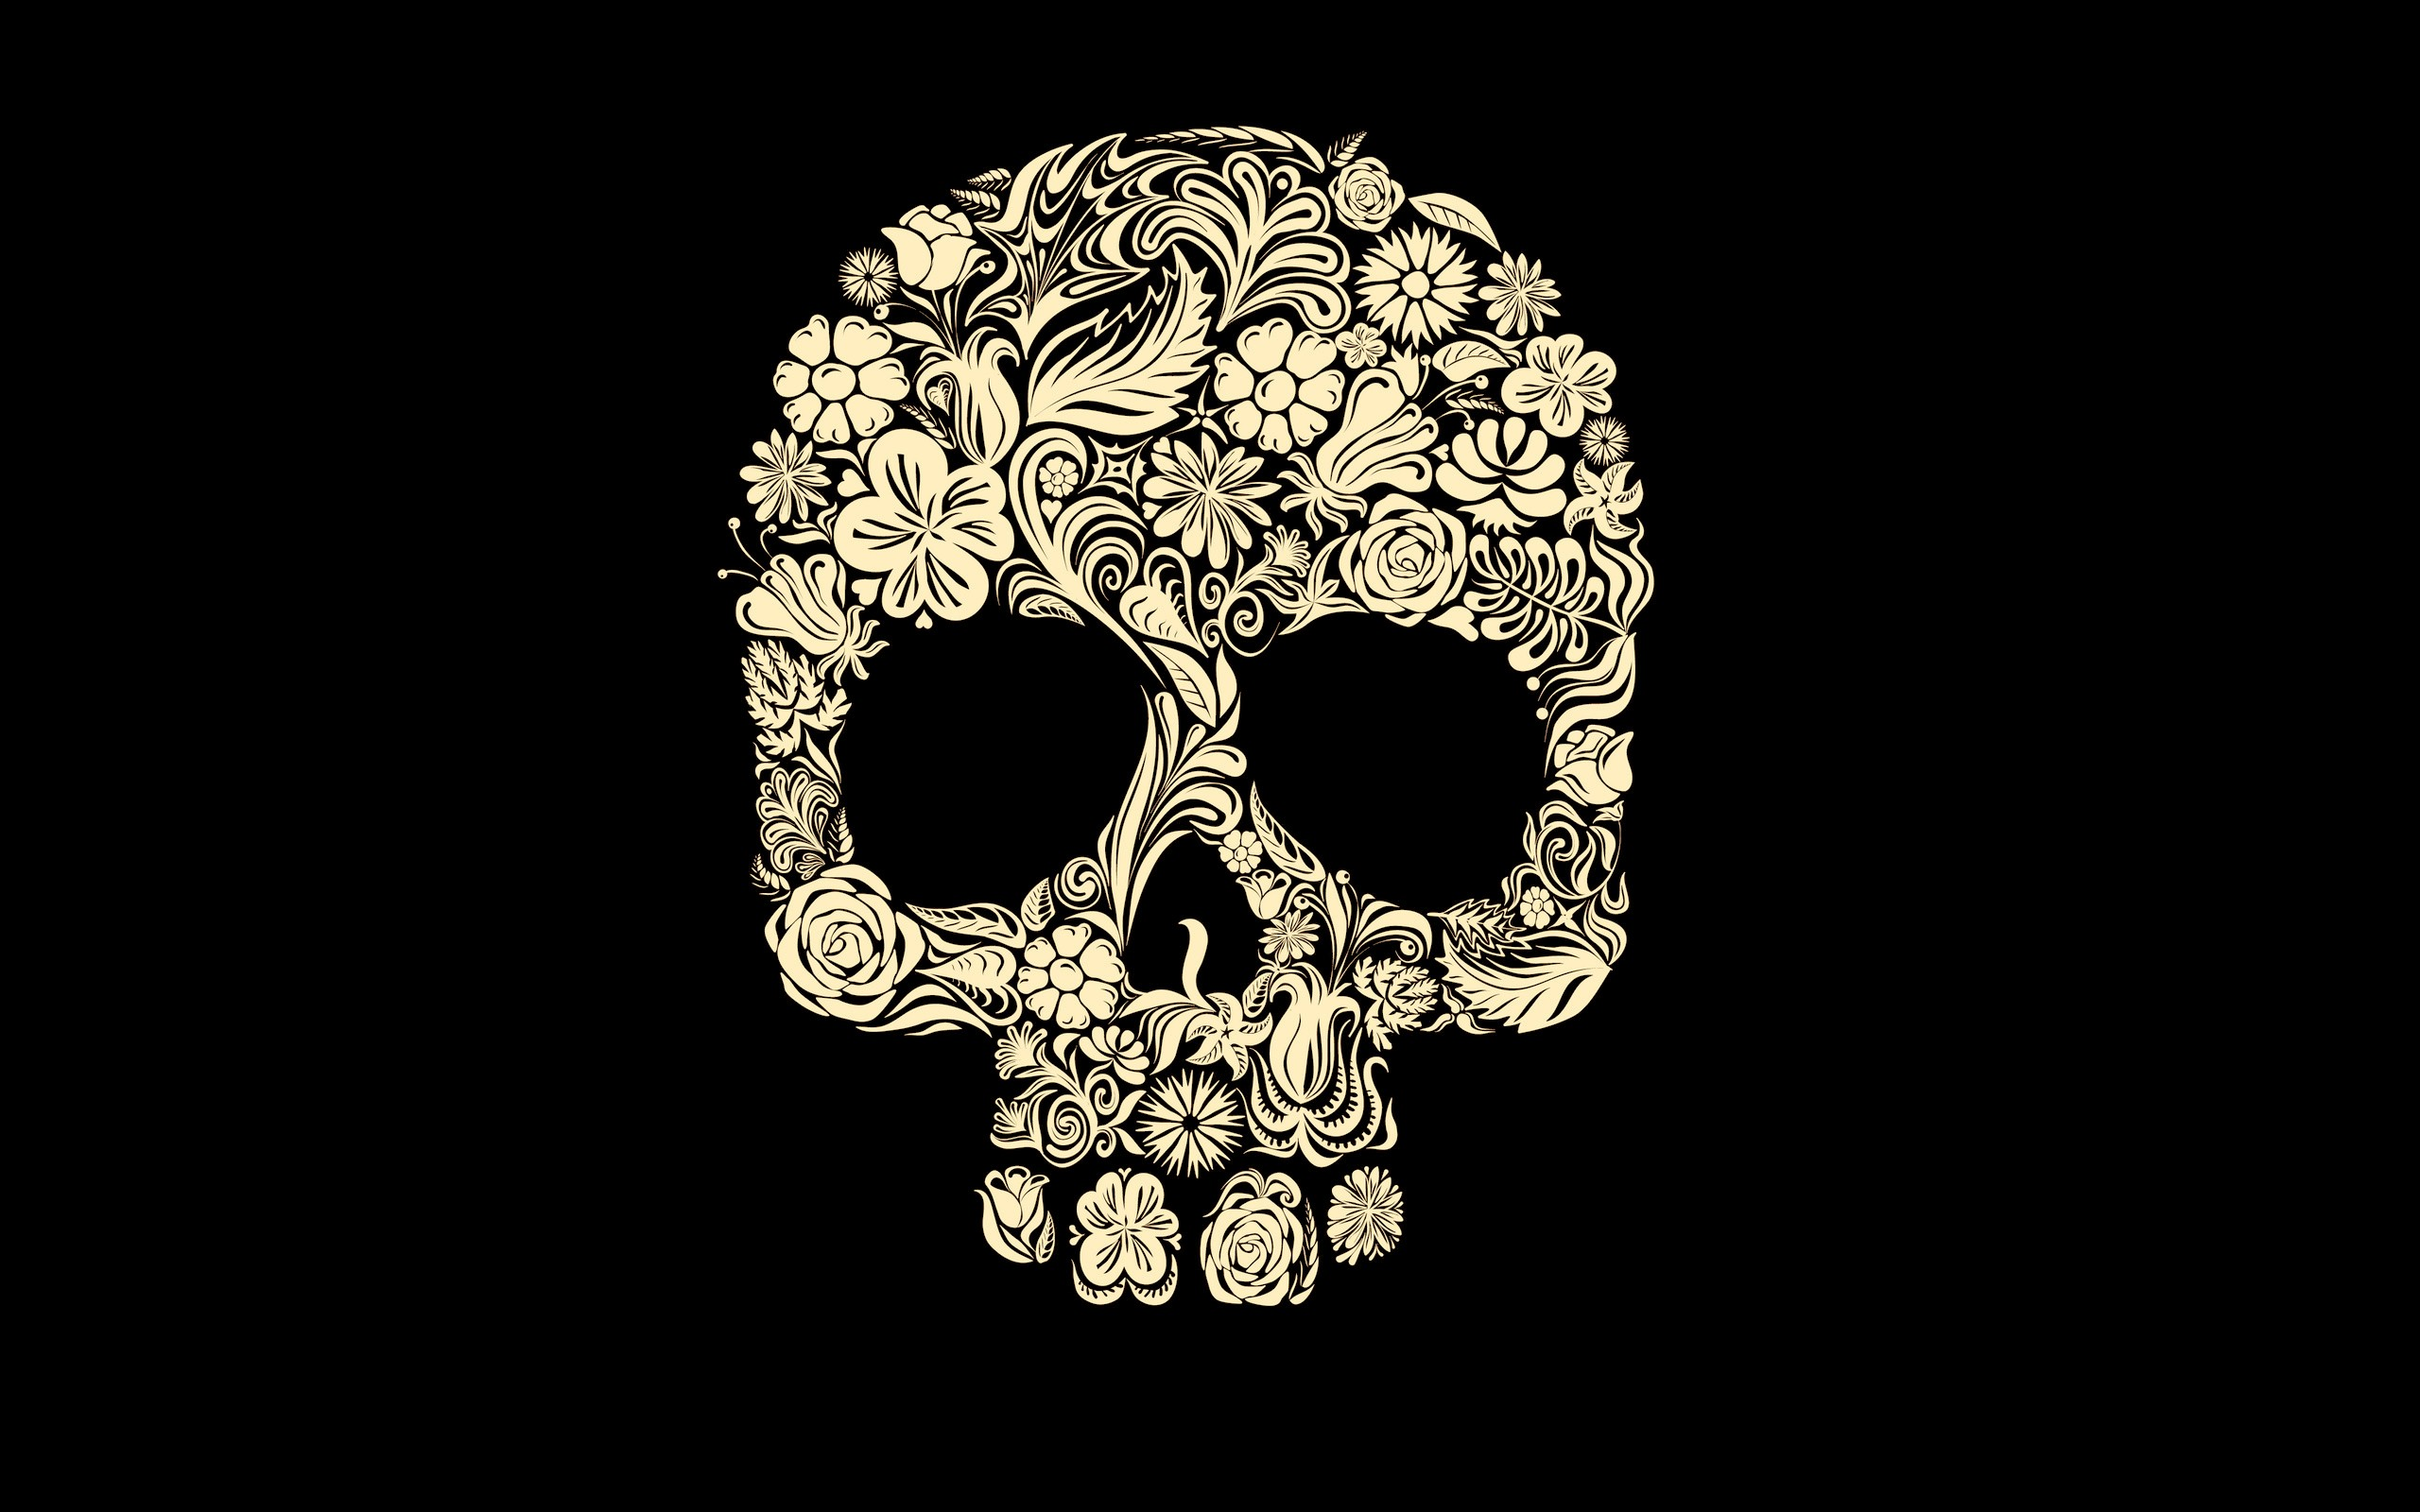 Dark - Skull Wallpaper